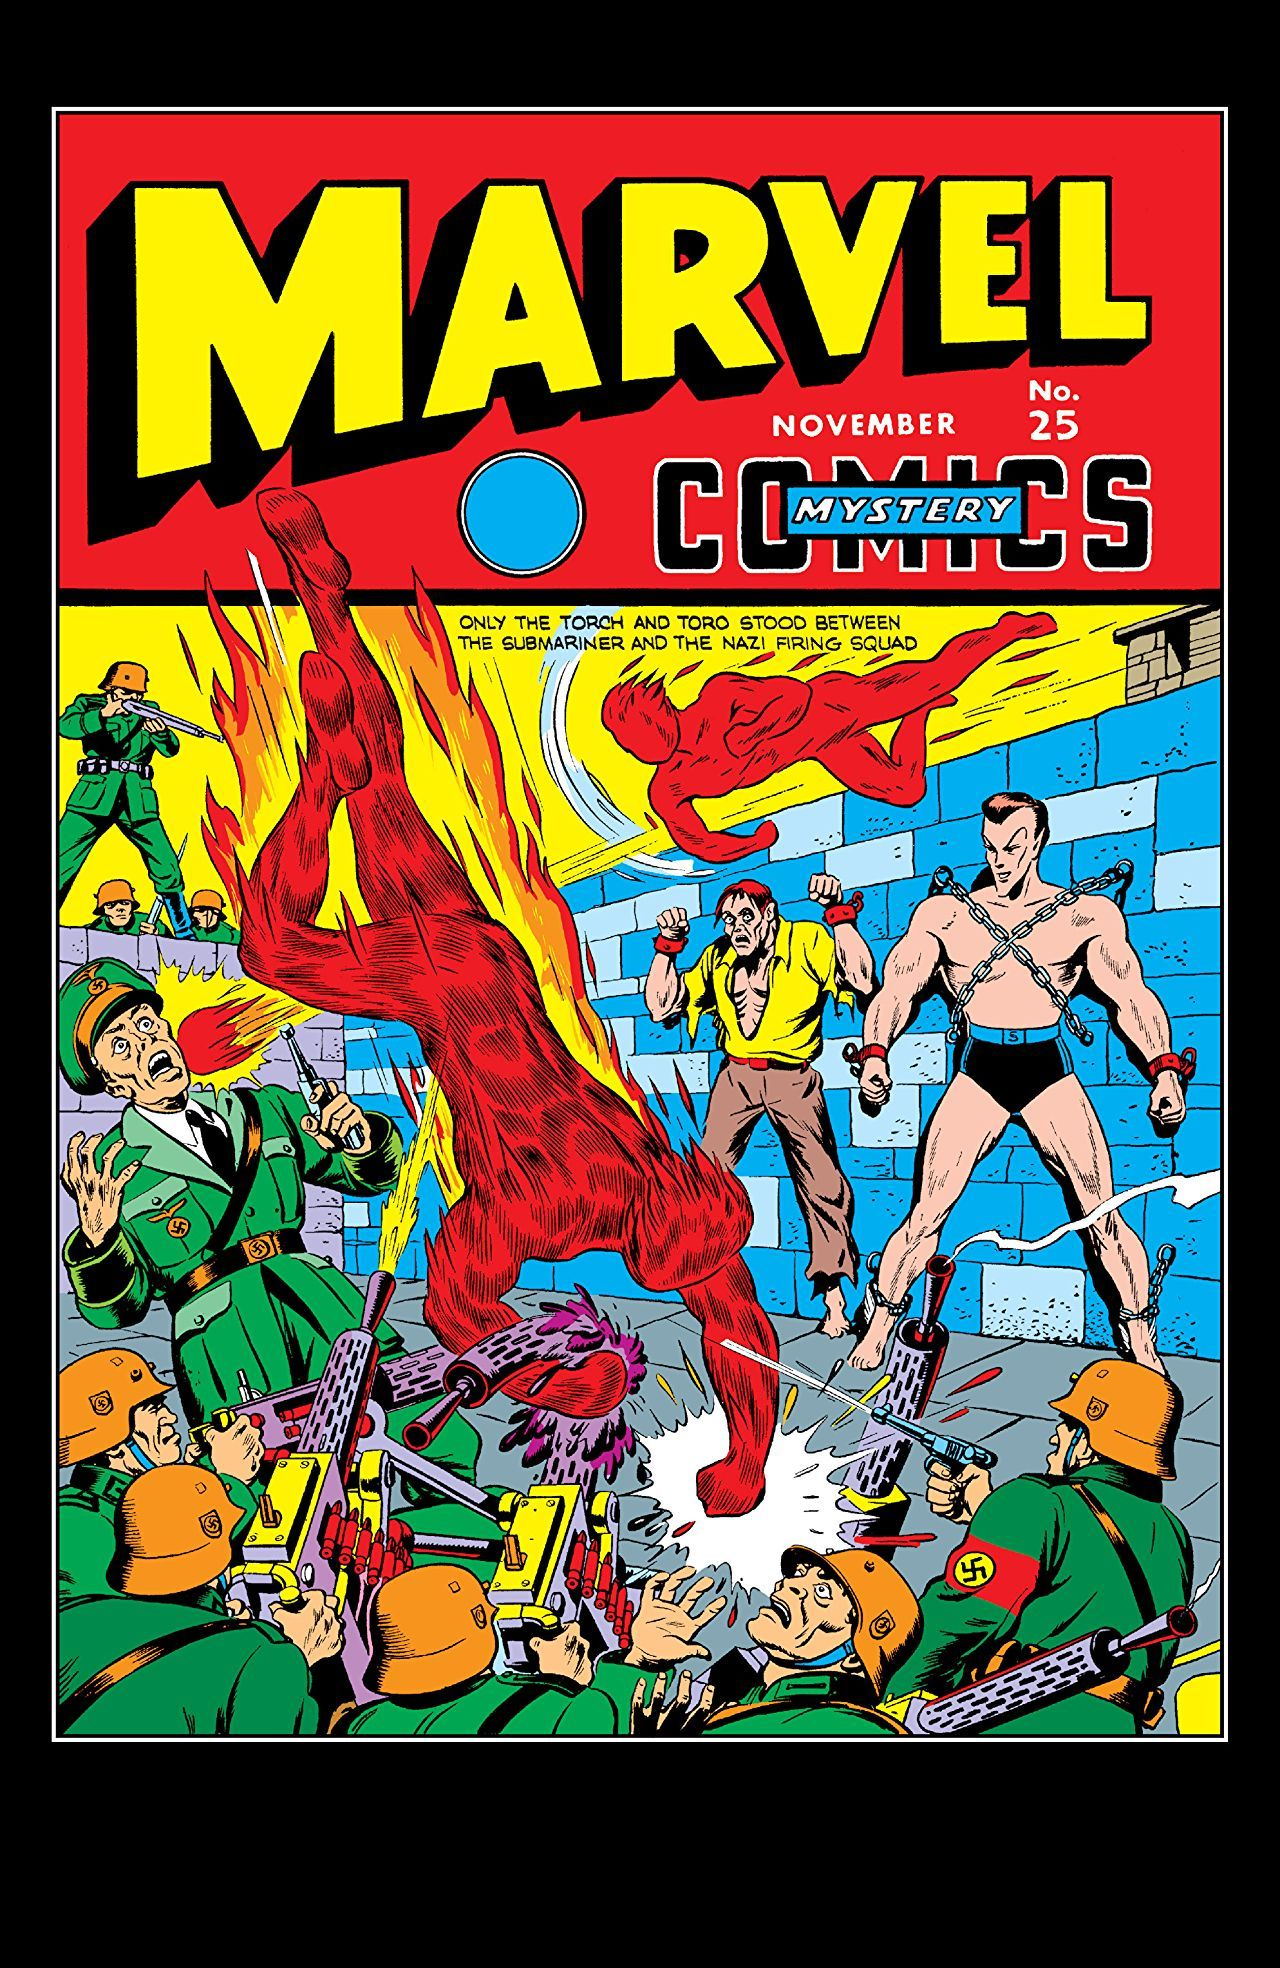 Marvel mystery comics 19391949 25 with images